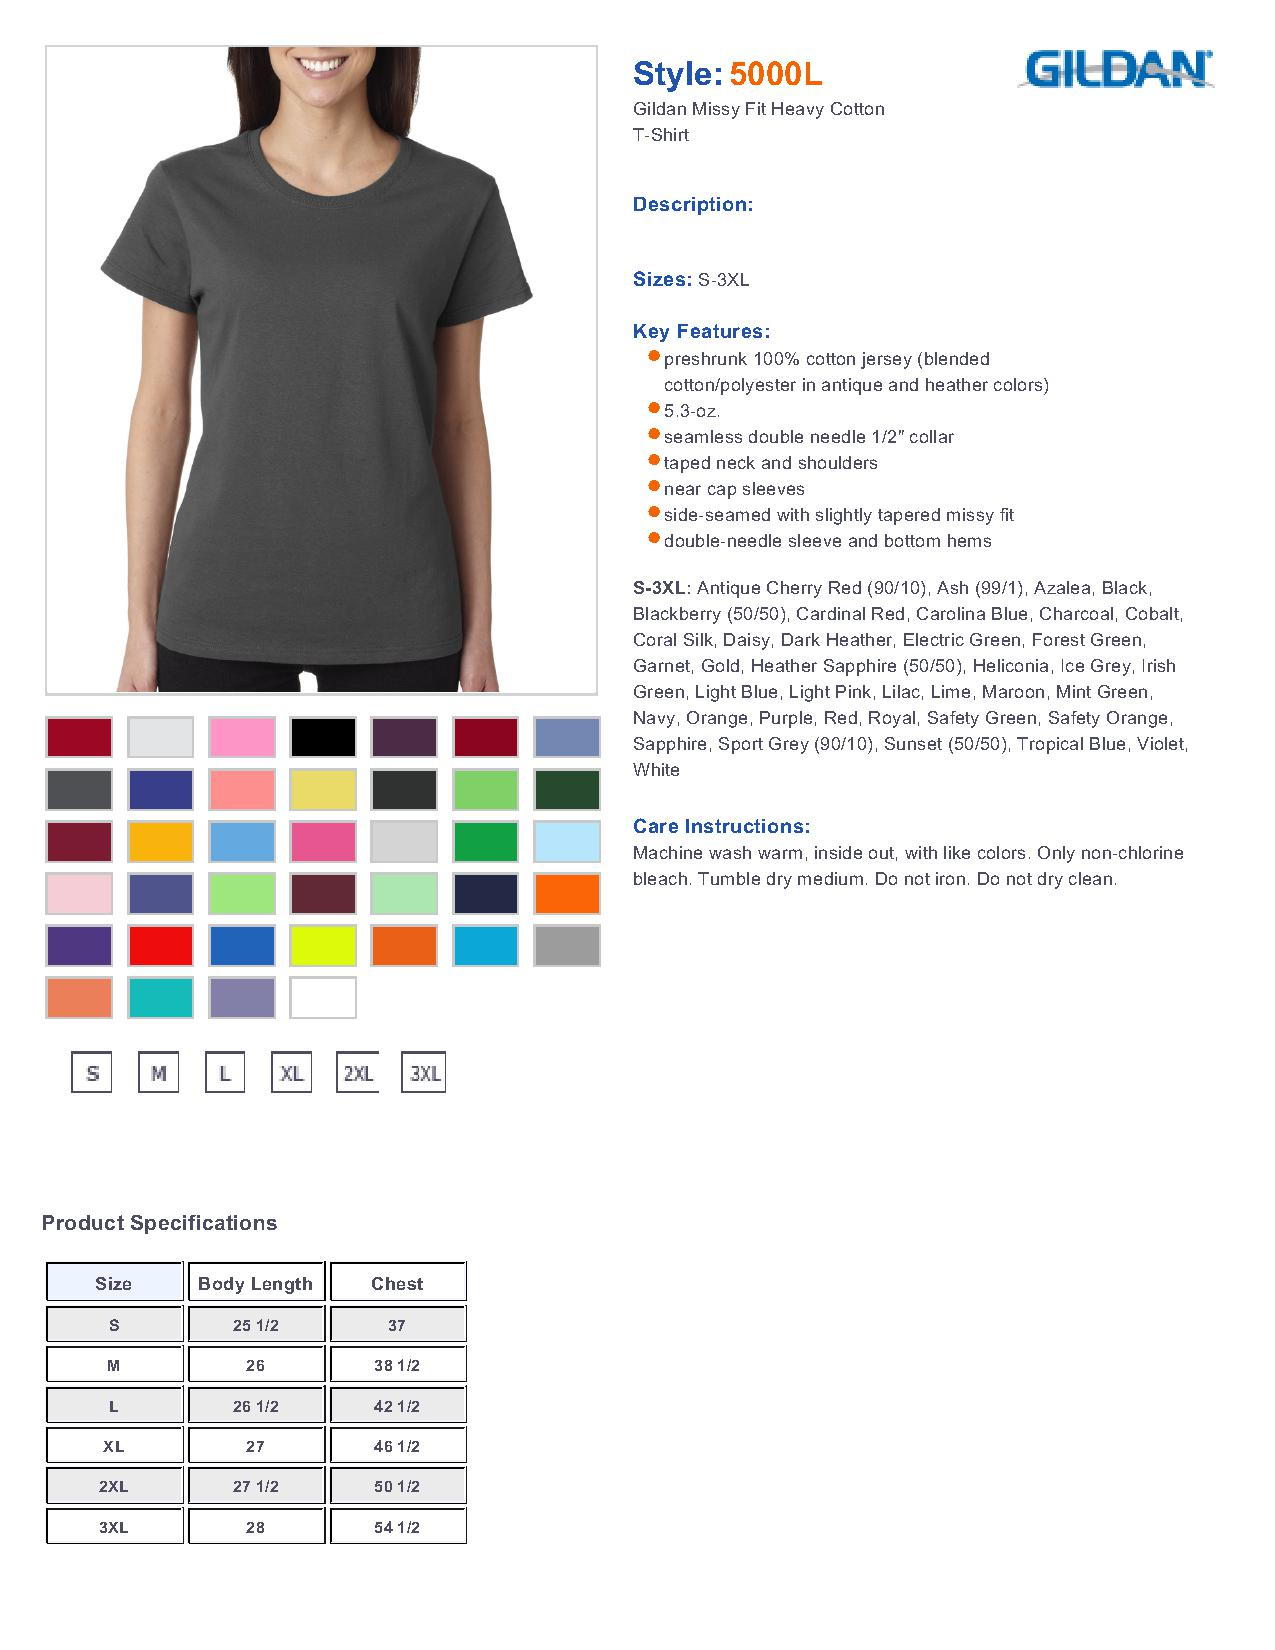 Gildan 5000l missy fit heavy cotton short sleeve t shirt 356 specs sizing specs nvjuhfo Image collections